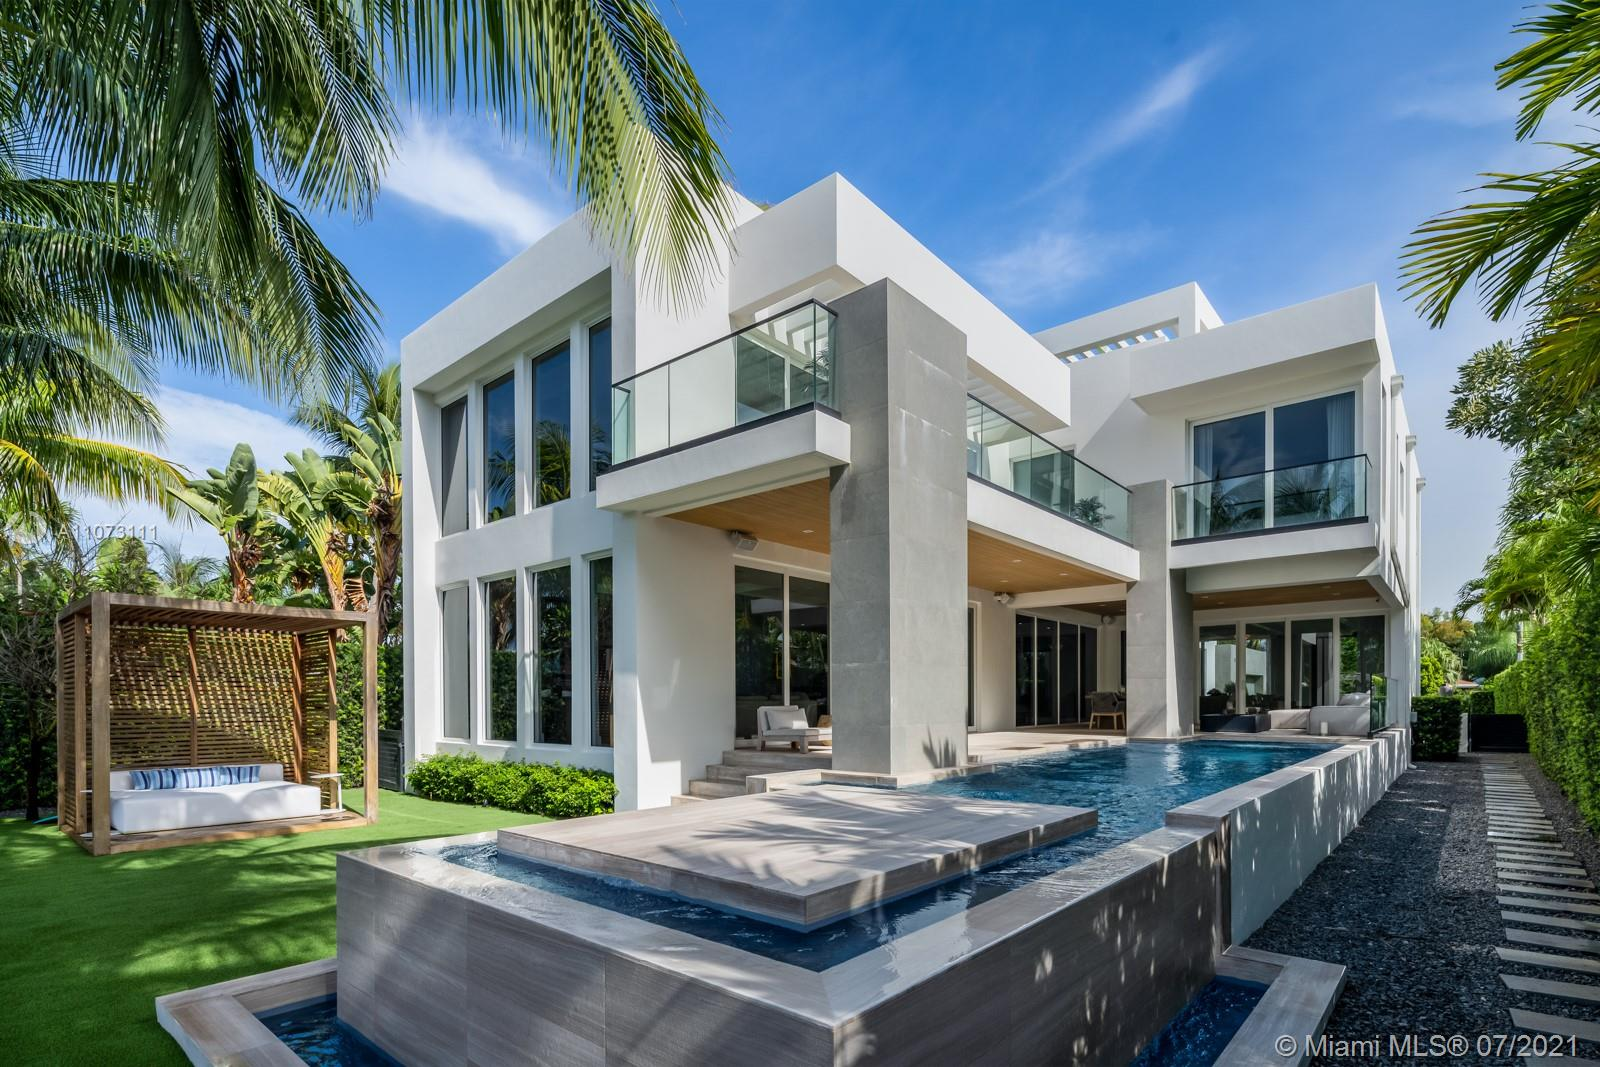 Located in the gated community of Normandy Isle, this custom built masterpiece offers 6,000 sf of meticulously crafted living space along with gorgeous finishes.  No detail was spared in the design of this home. 672 S Shore offers the highly sought after Miami lifestyle & was designed to blur the lines of indoor/outdoor living.  Inside the home you will find custom details including hand crafted cabinetry, tray ceilings, designer lighting, a full smart home including security cameras throughout, lighting, shades/drapes, surround sound speakers, thermostats, Dornbracht fixtures, custom closets, sand blasted marble floors, and a pivoting front door.  Outdoor living area has a spa, full summer kitchen with gas grill, ice maker, and fire pit.  Please contact agent for showings.